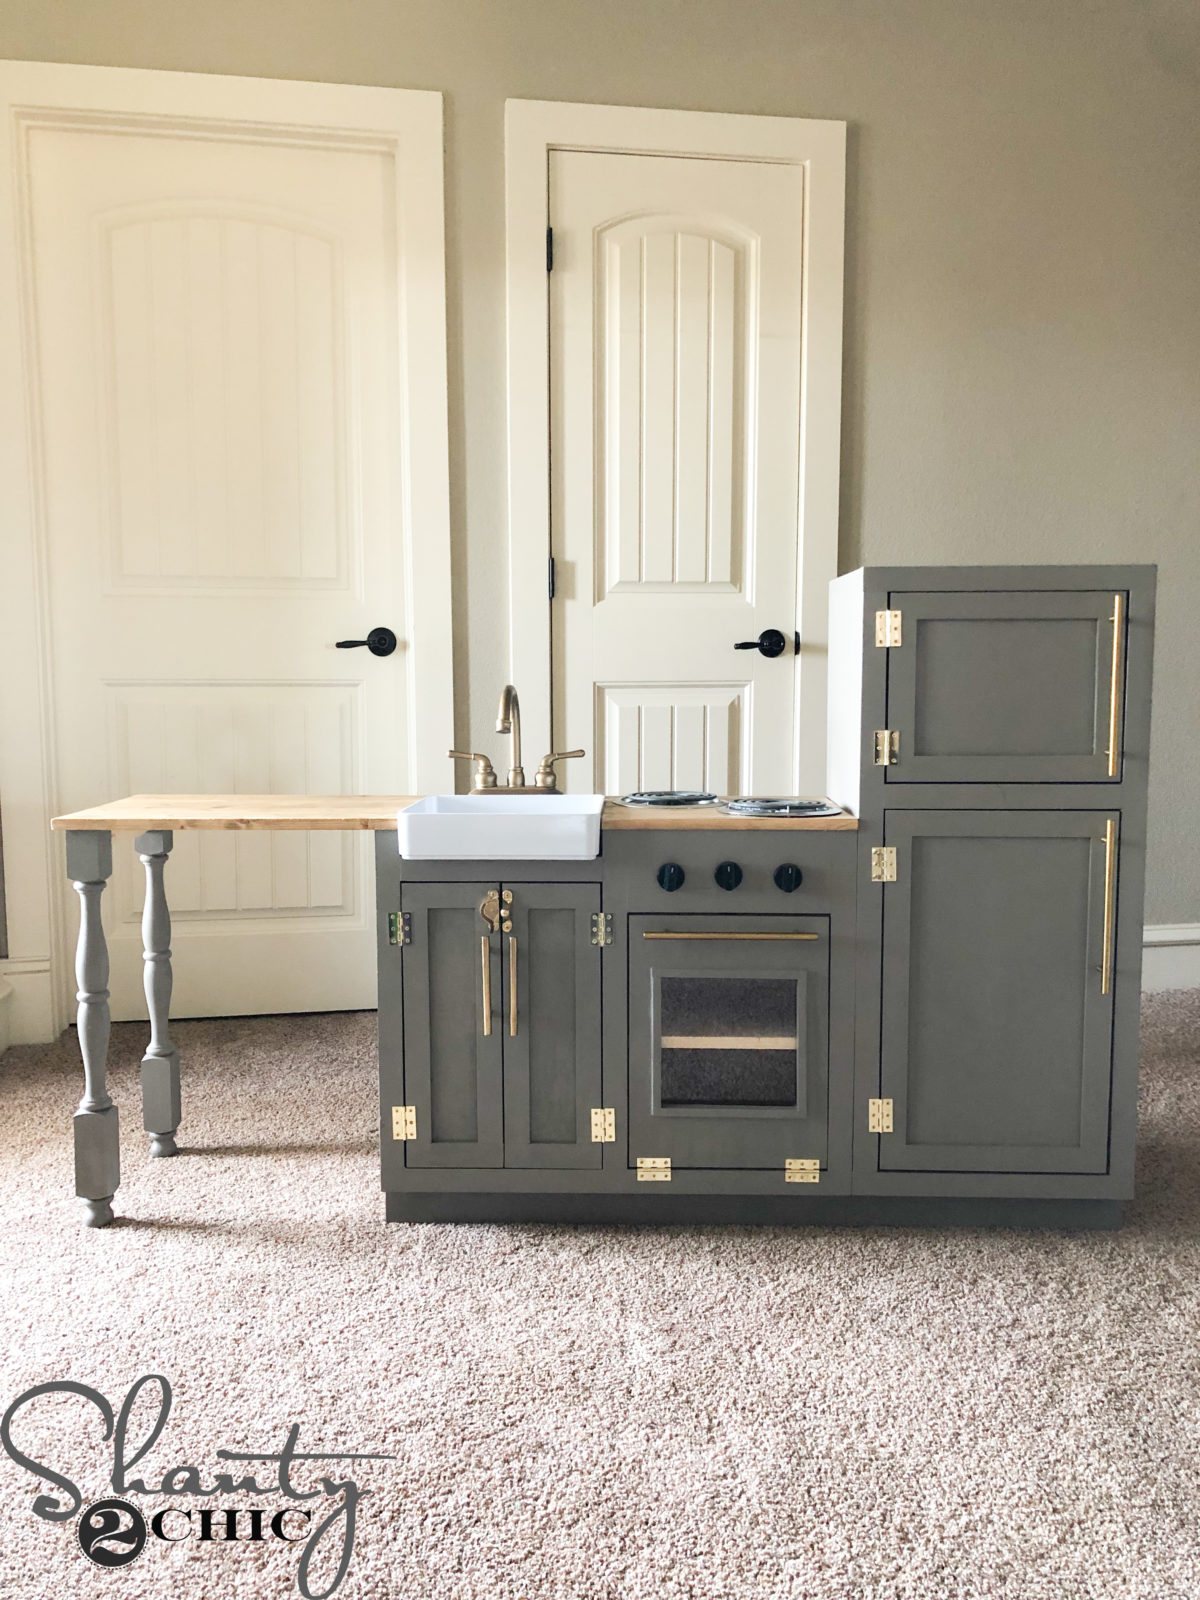 Diy Play Kitchen Shanty 2 Chic